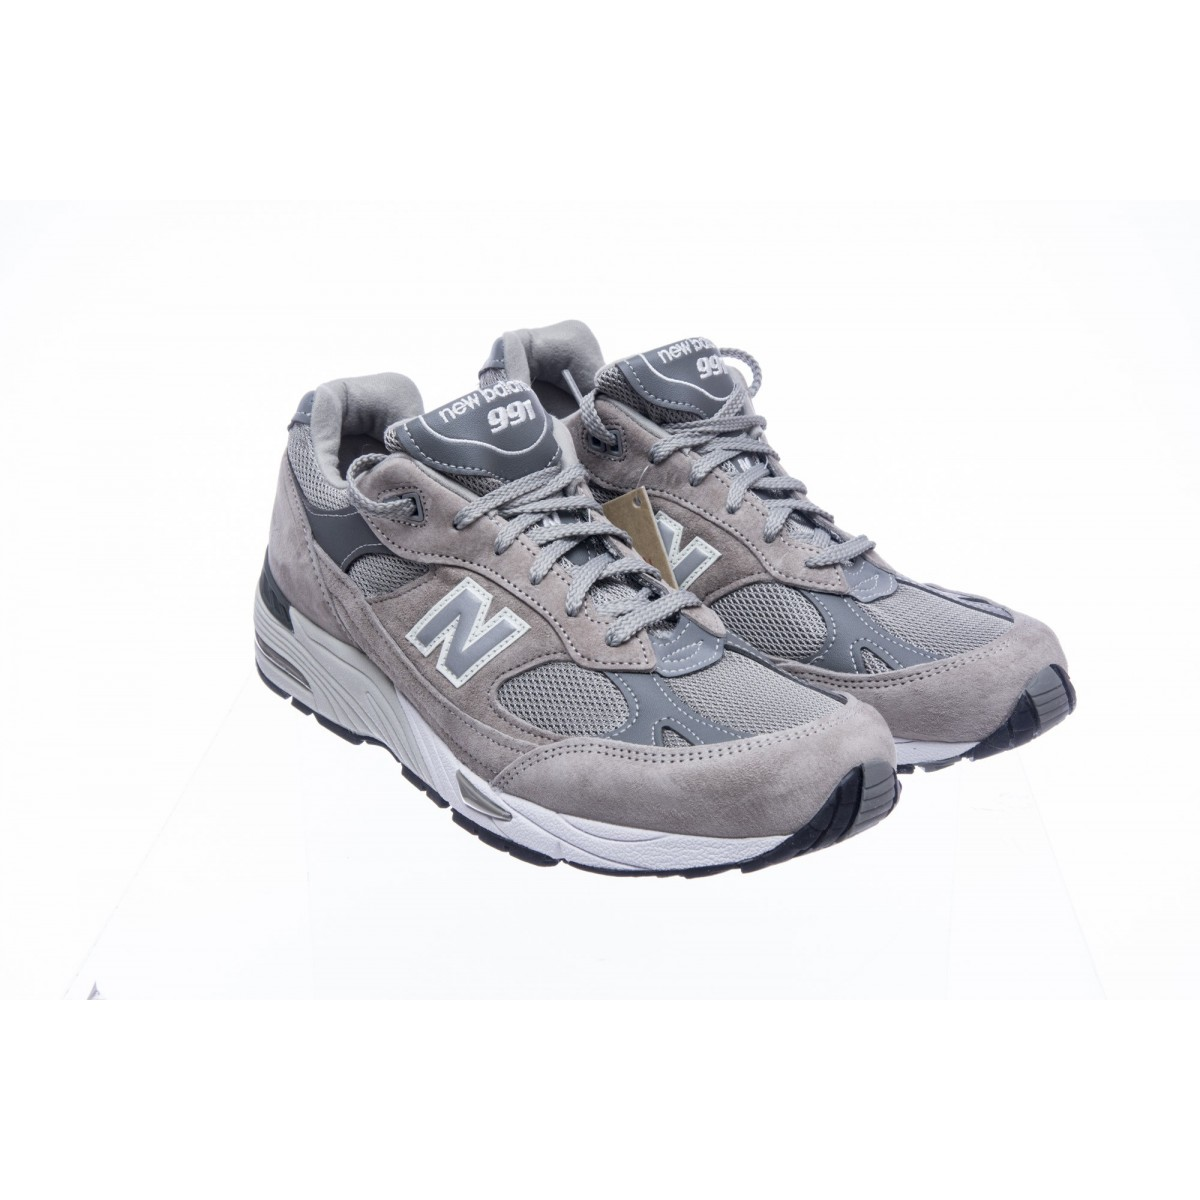 Schuhen New Balance Männer - M991 made in UK